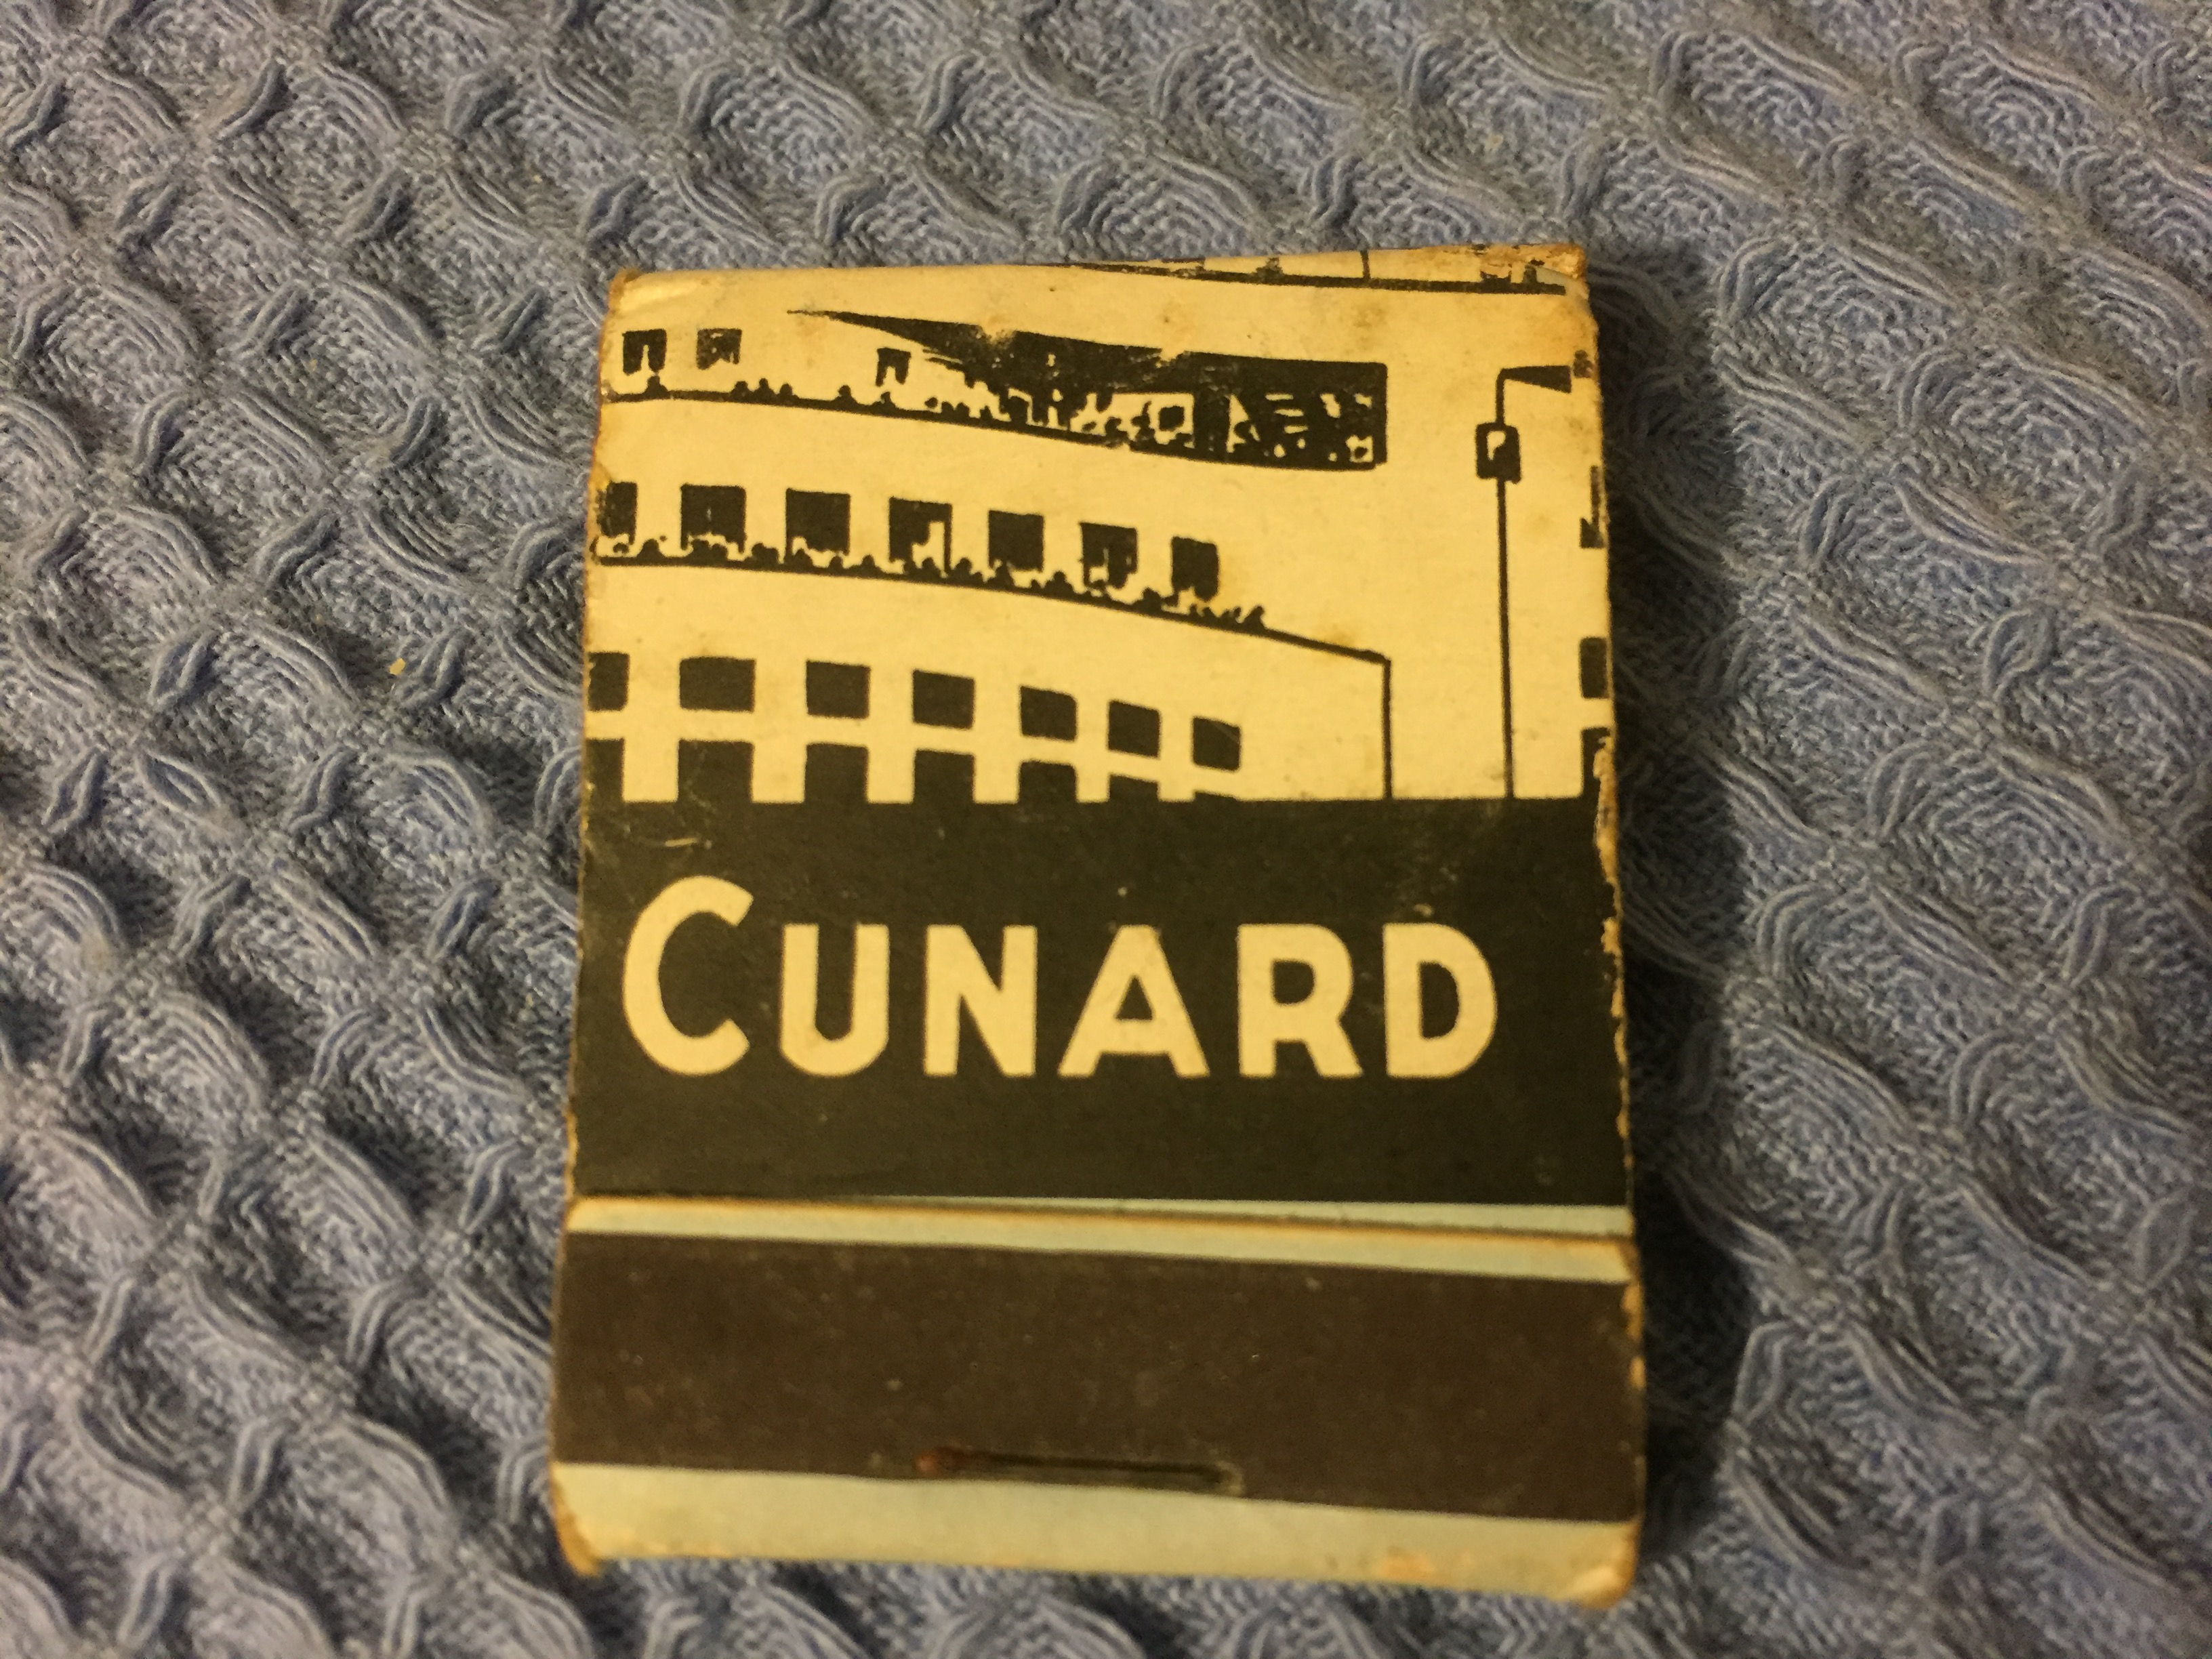 VERY EARLY UNUSED FLAT PACK BOX OF MATCHES FROM THE CUNARD LINE